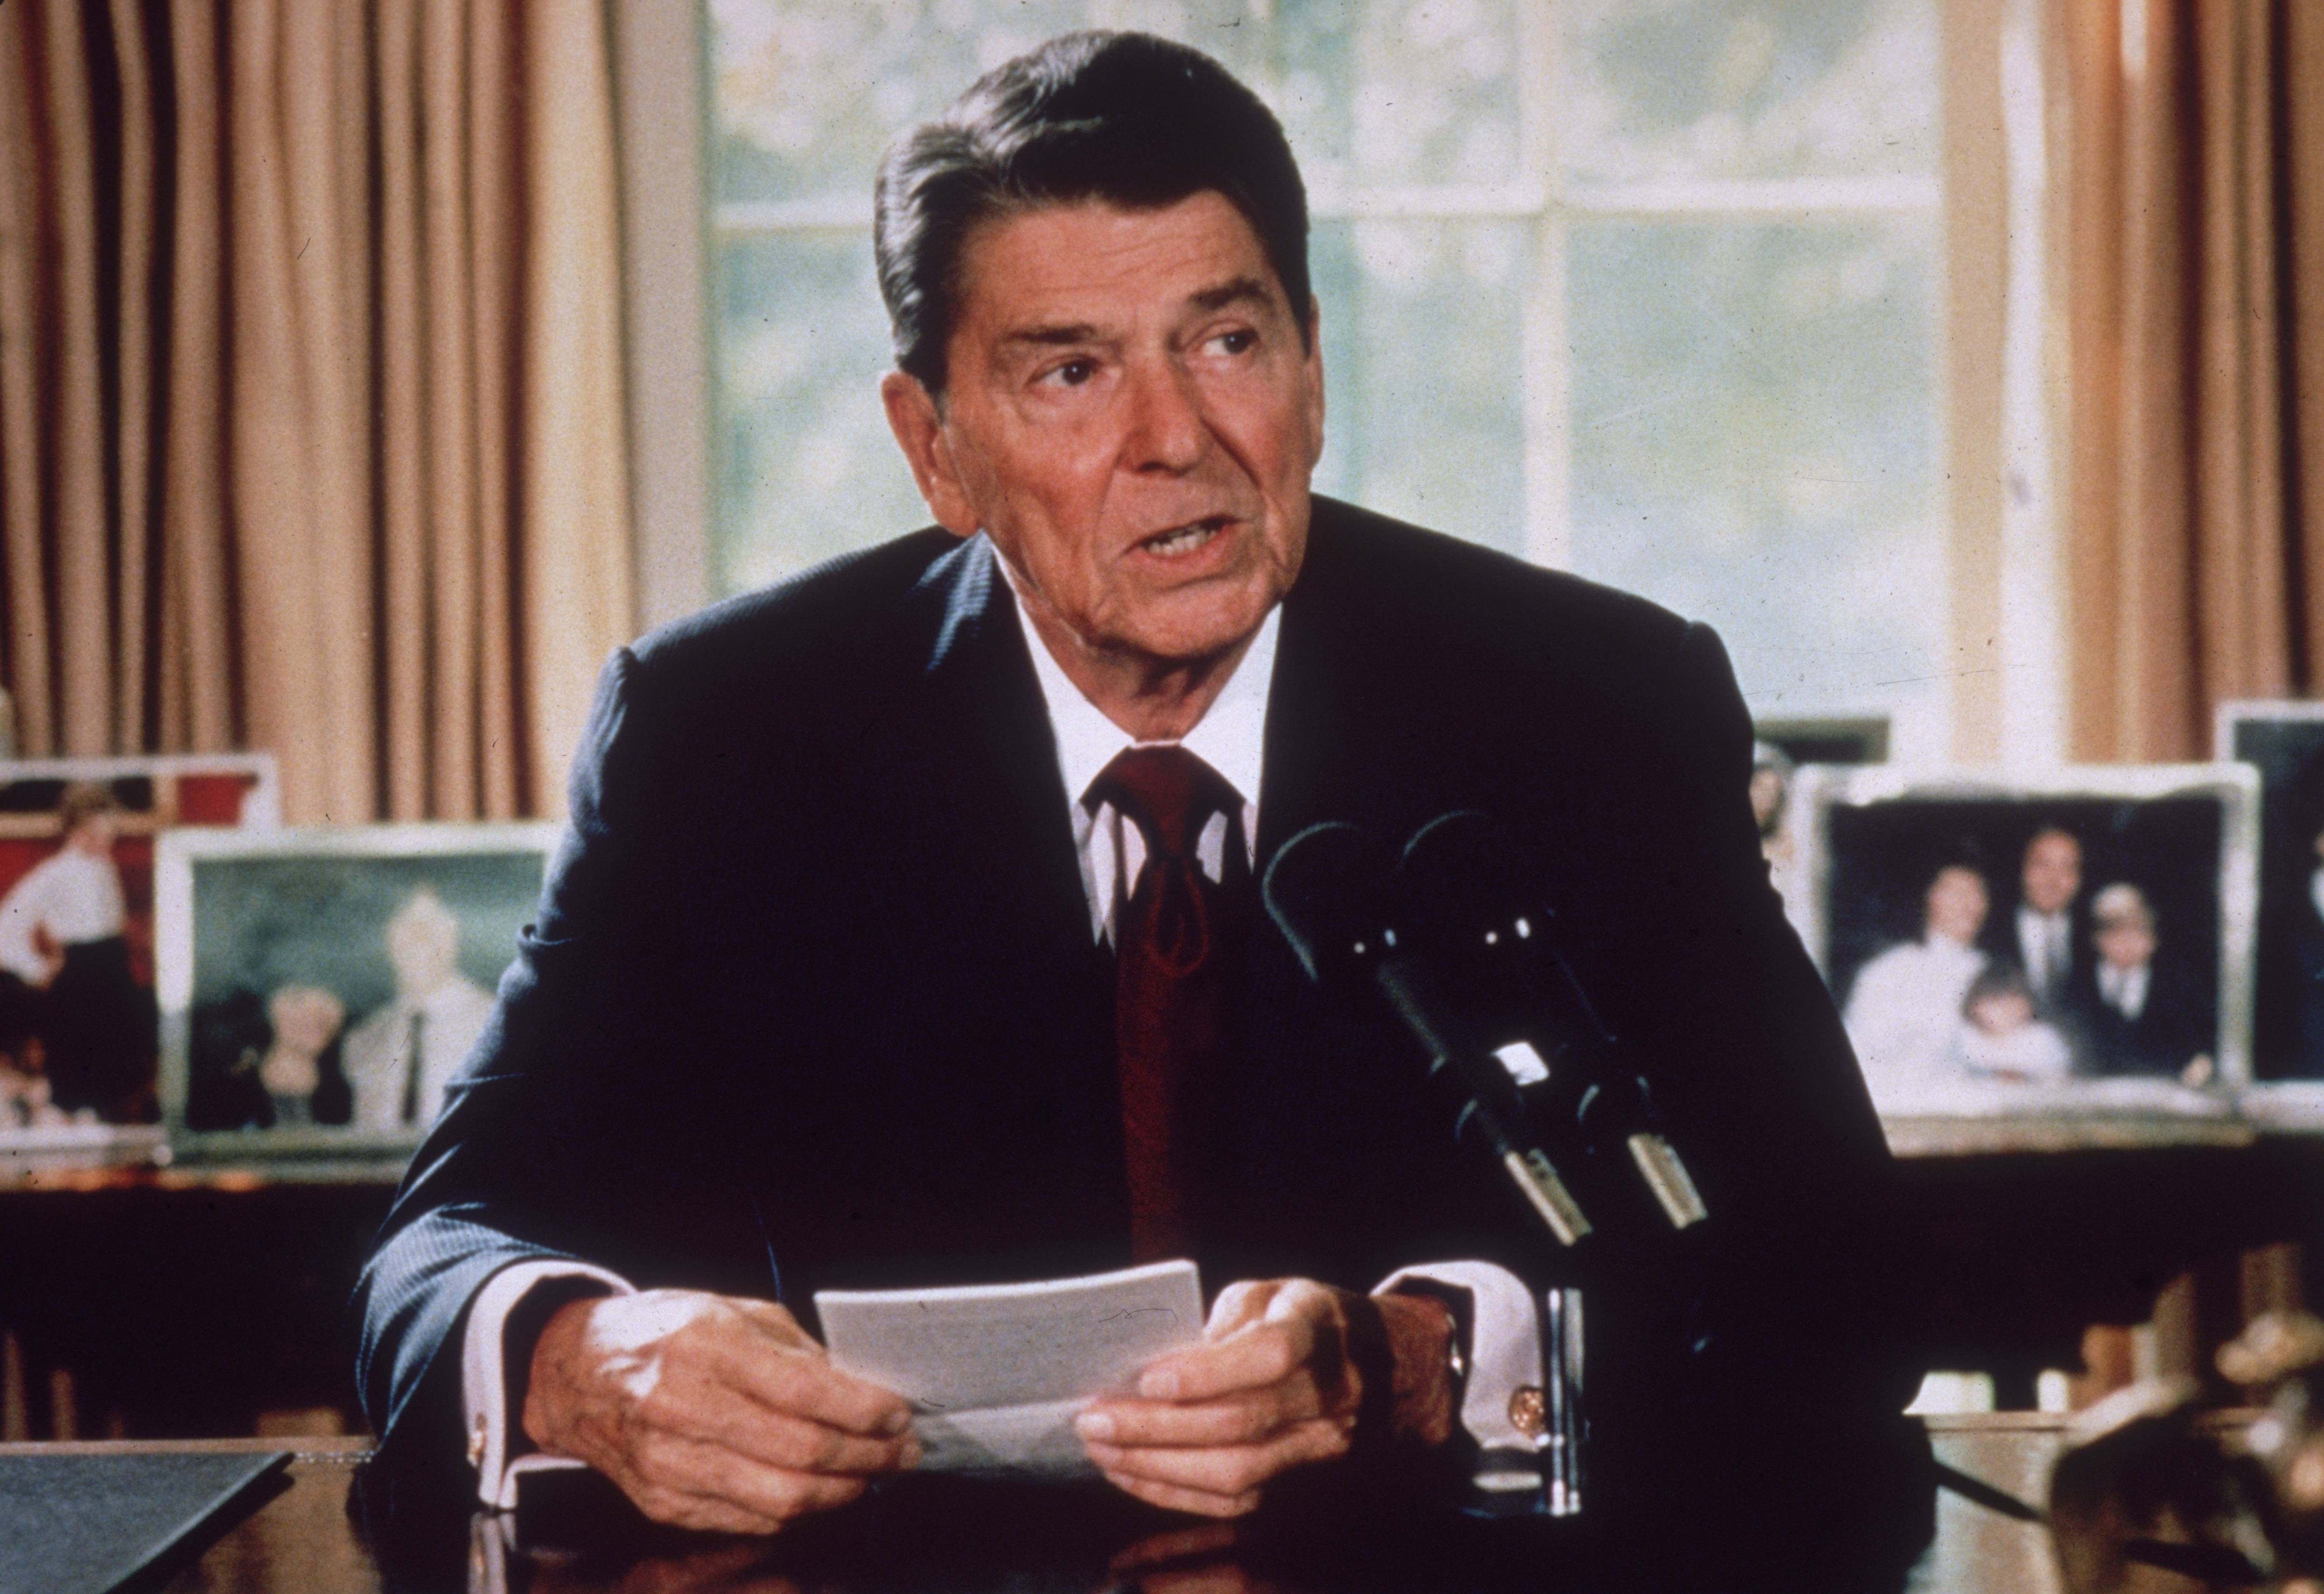 Gallery For > Ronald Reagan Wallpapers